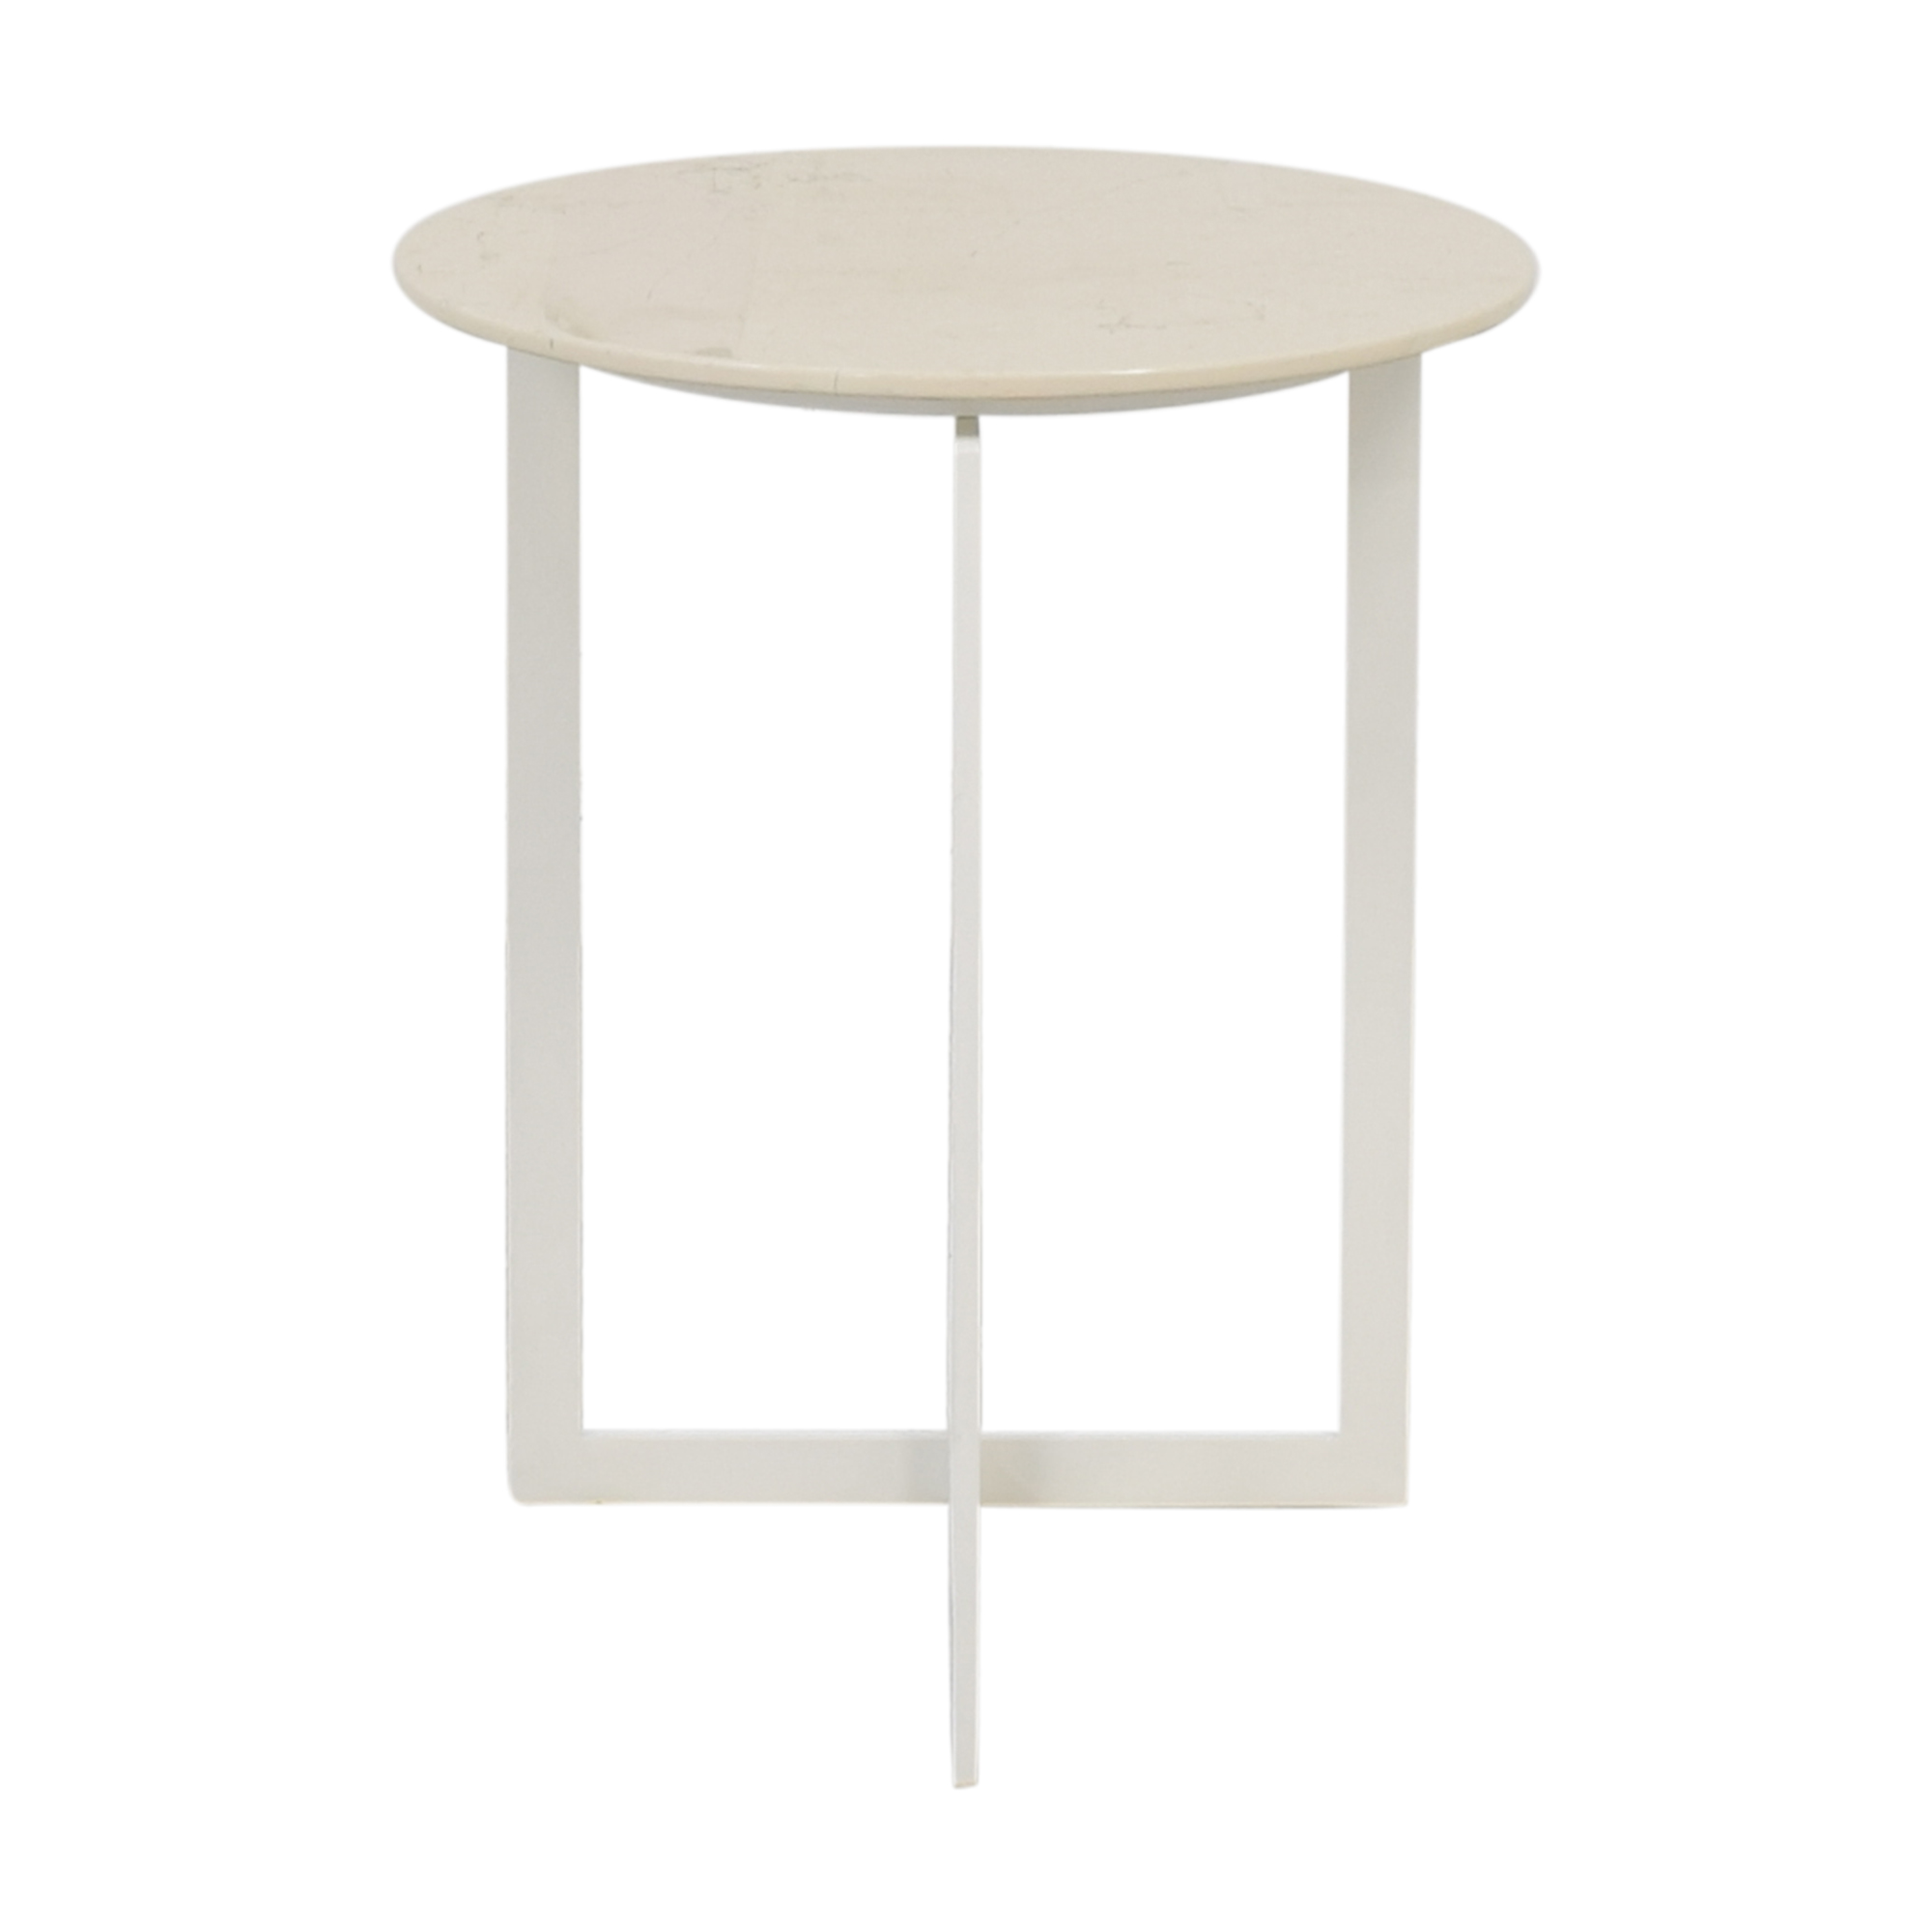 Koleksiyon Koleksiyon Terna End Table coupon